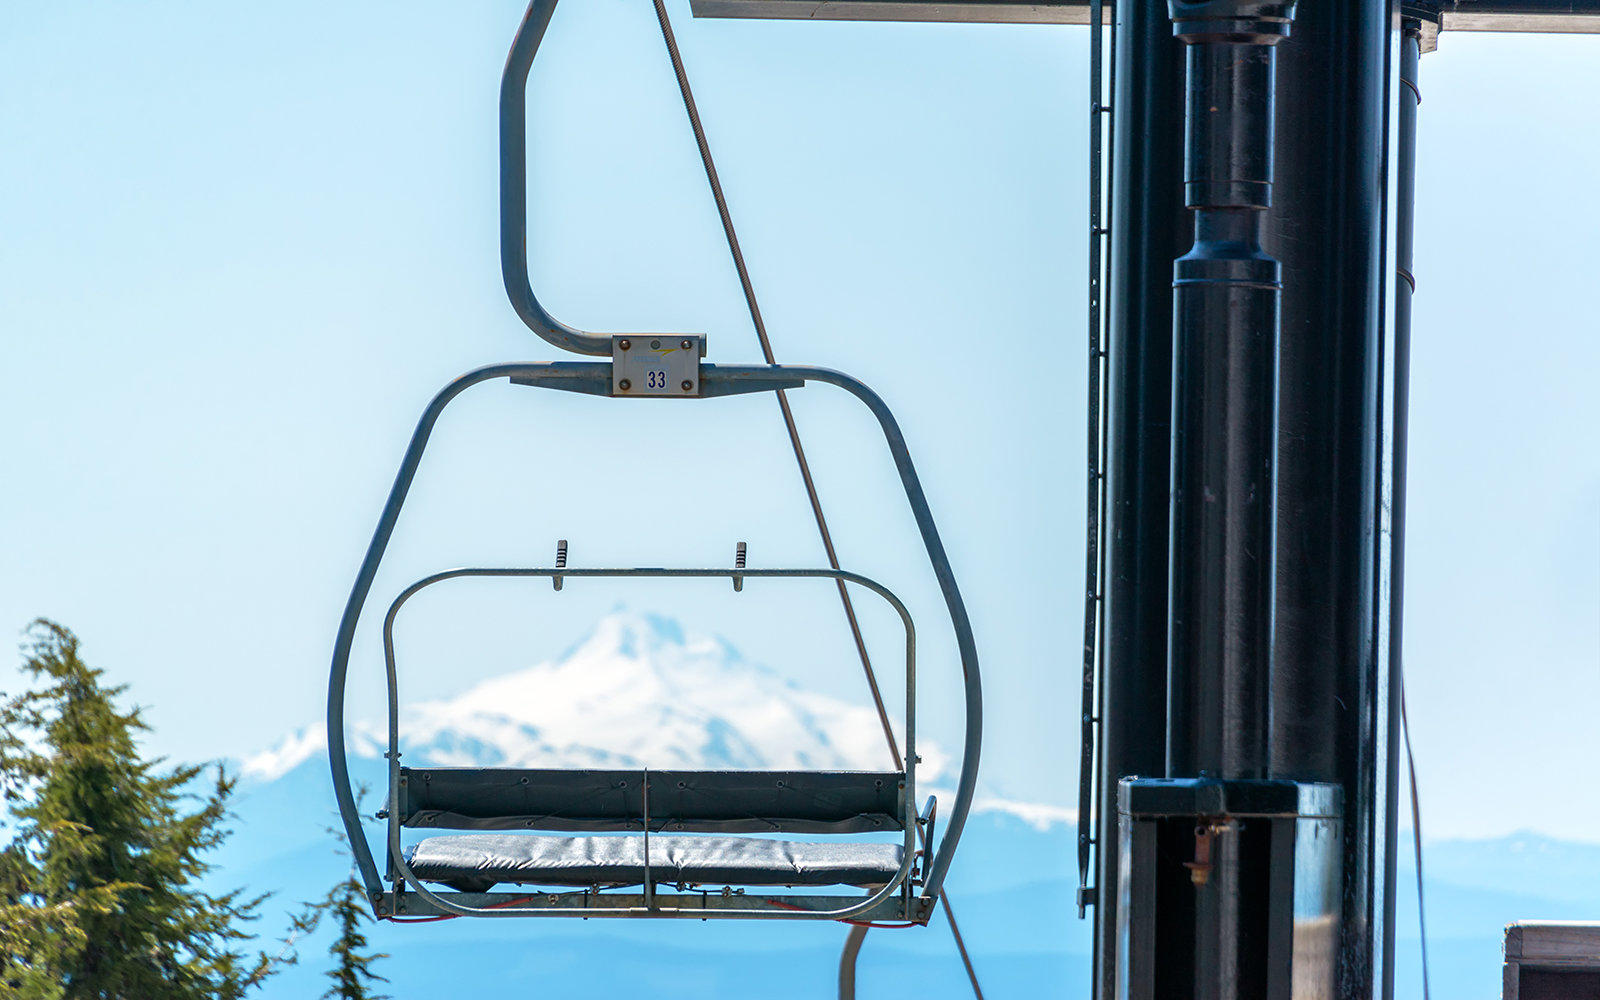 speed off lift flings backwards news chairlift at goes chair riders ski high watch